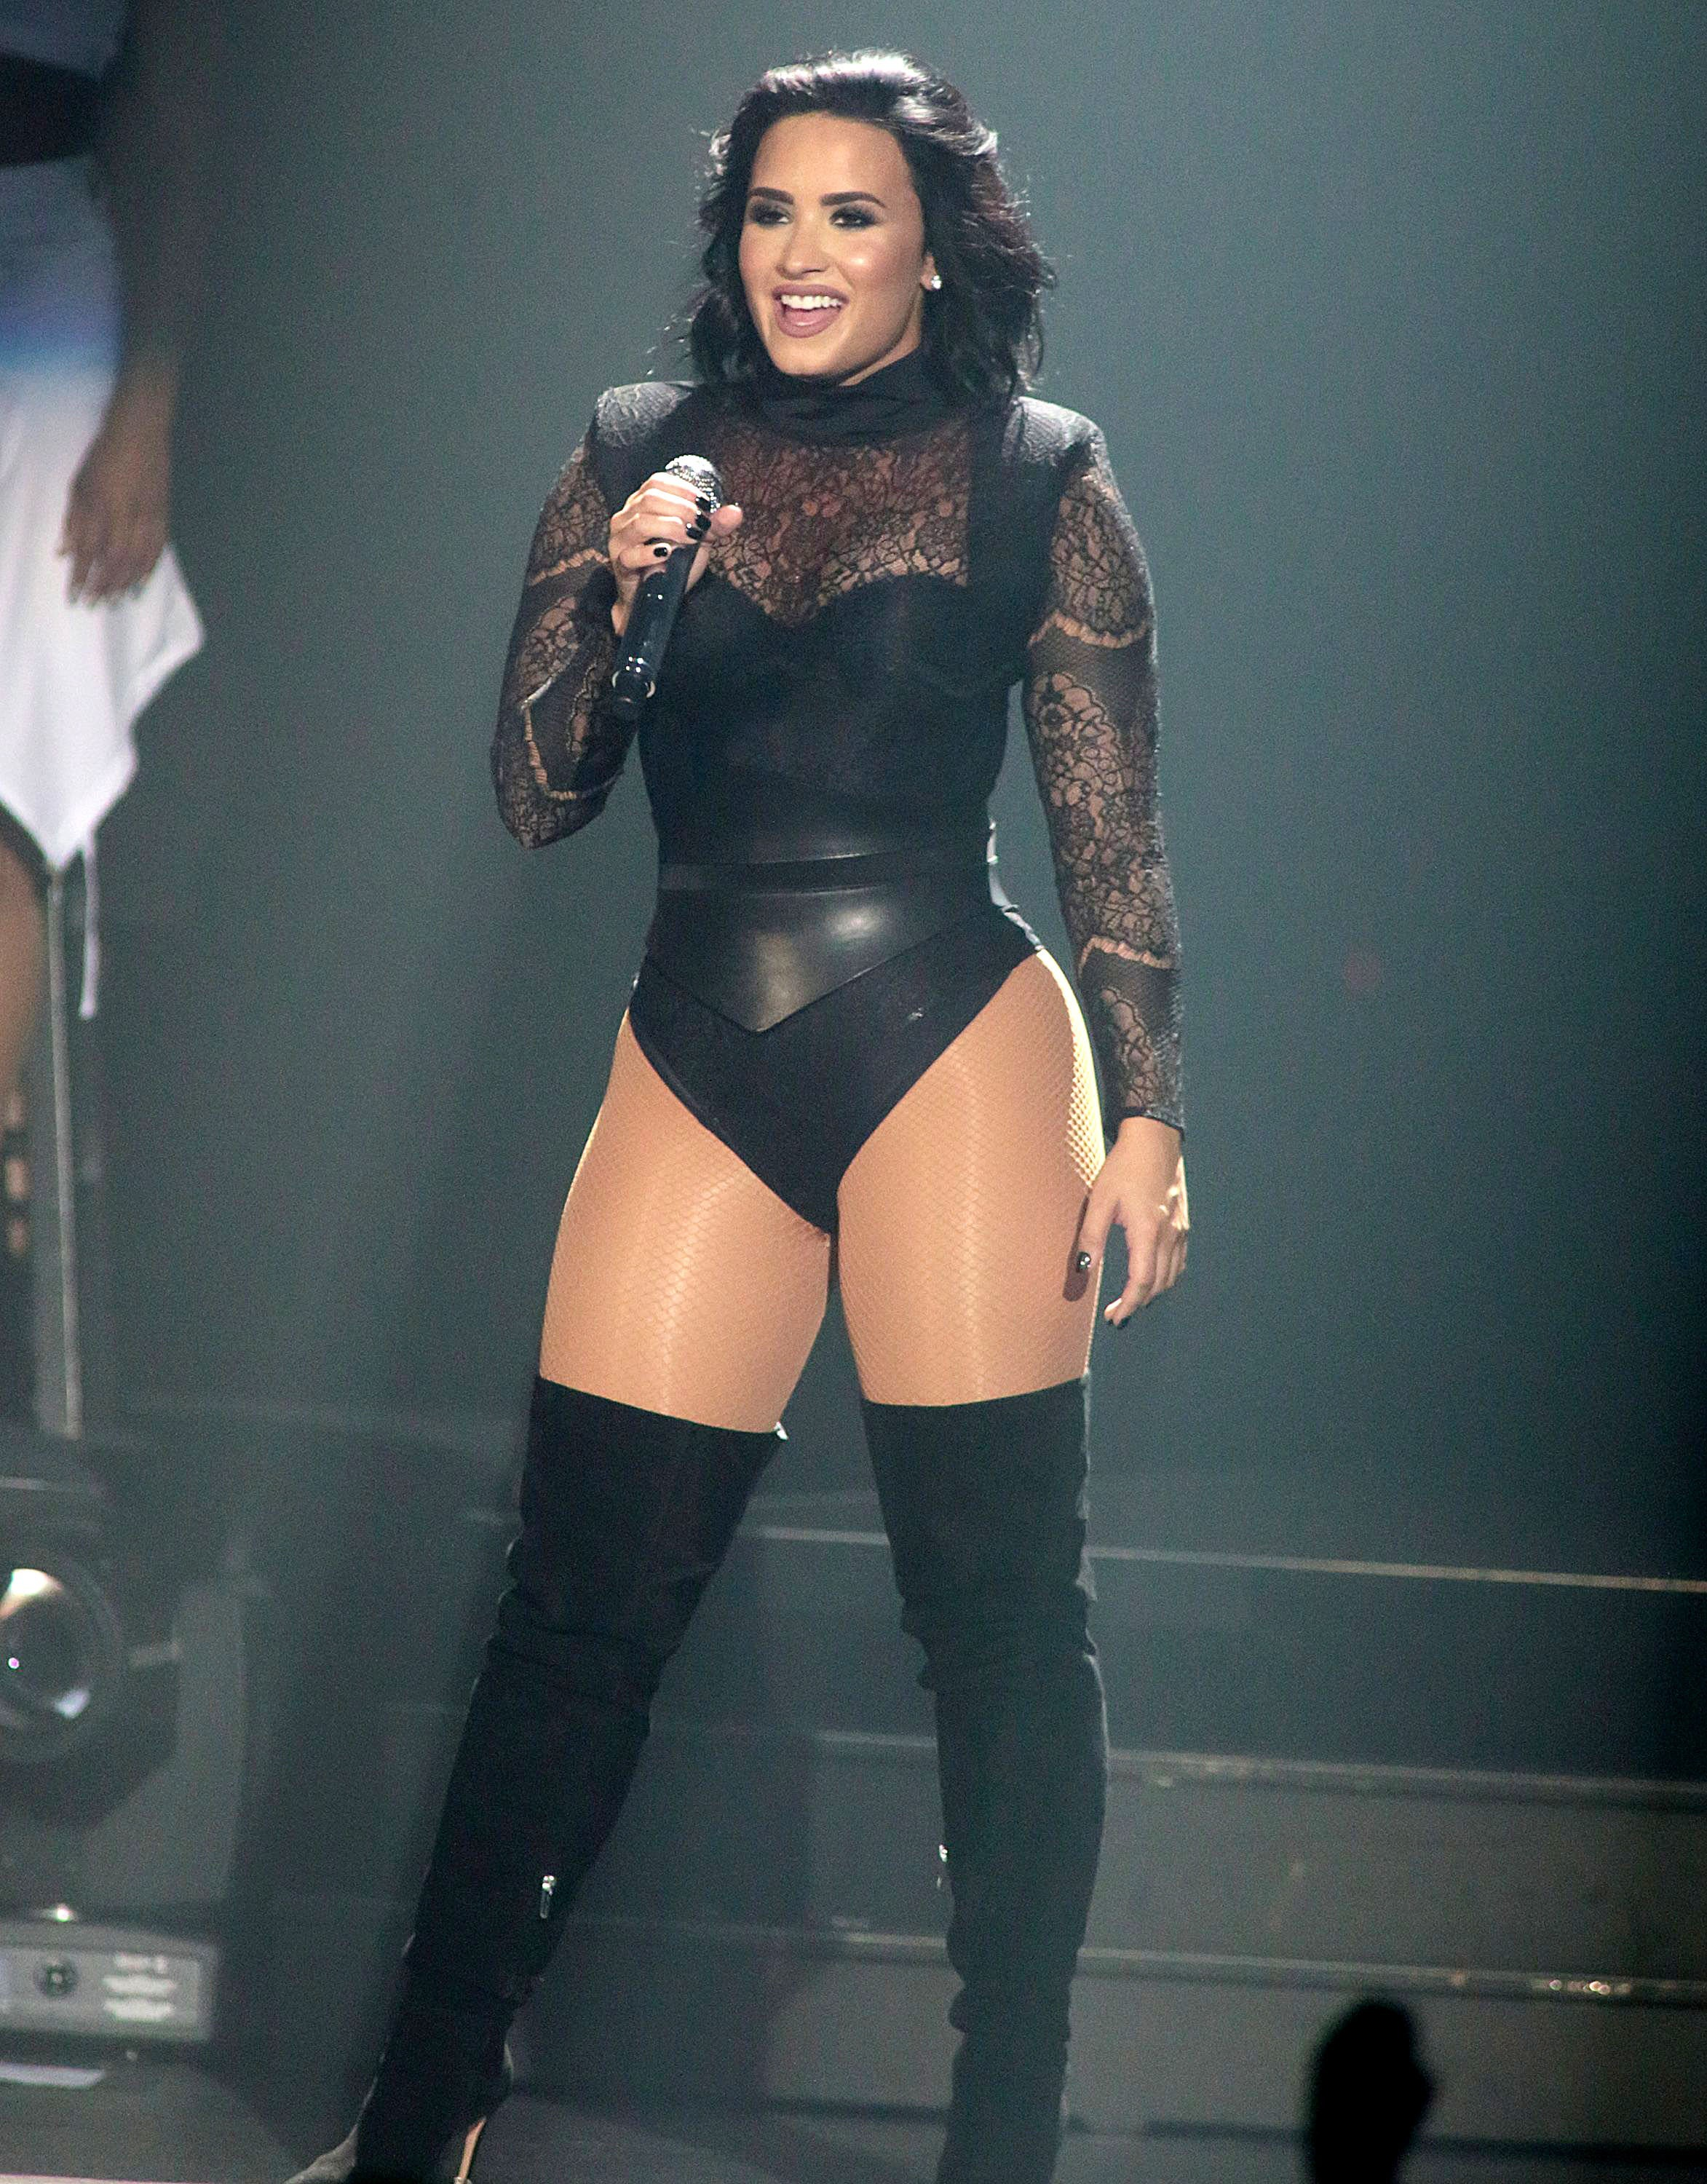 demi lovato performing